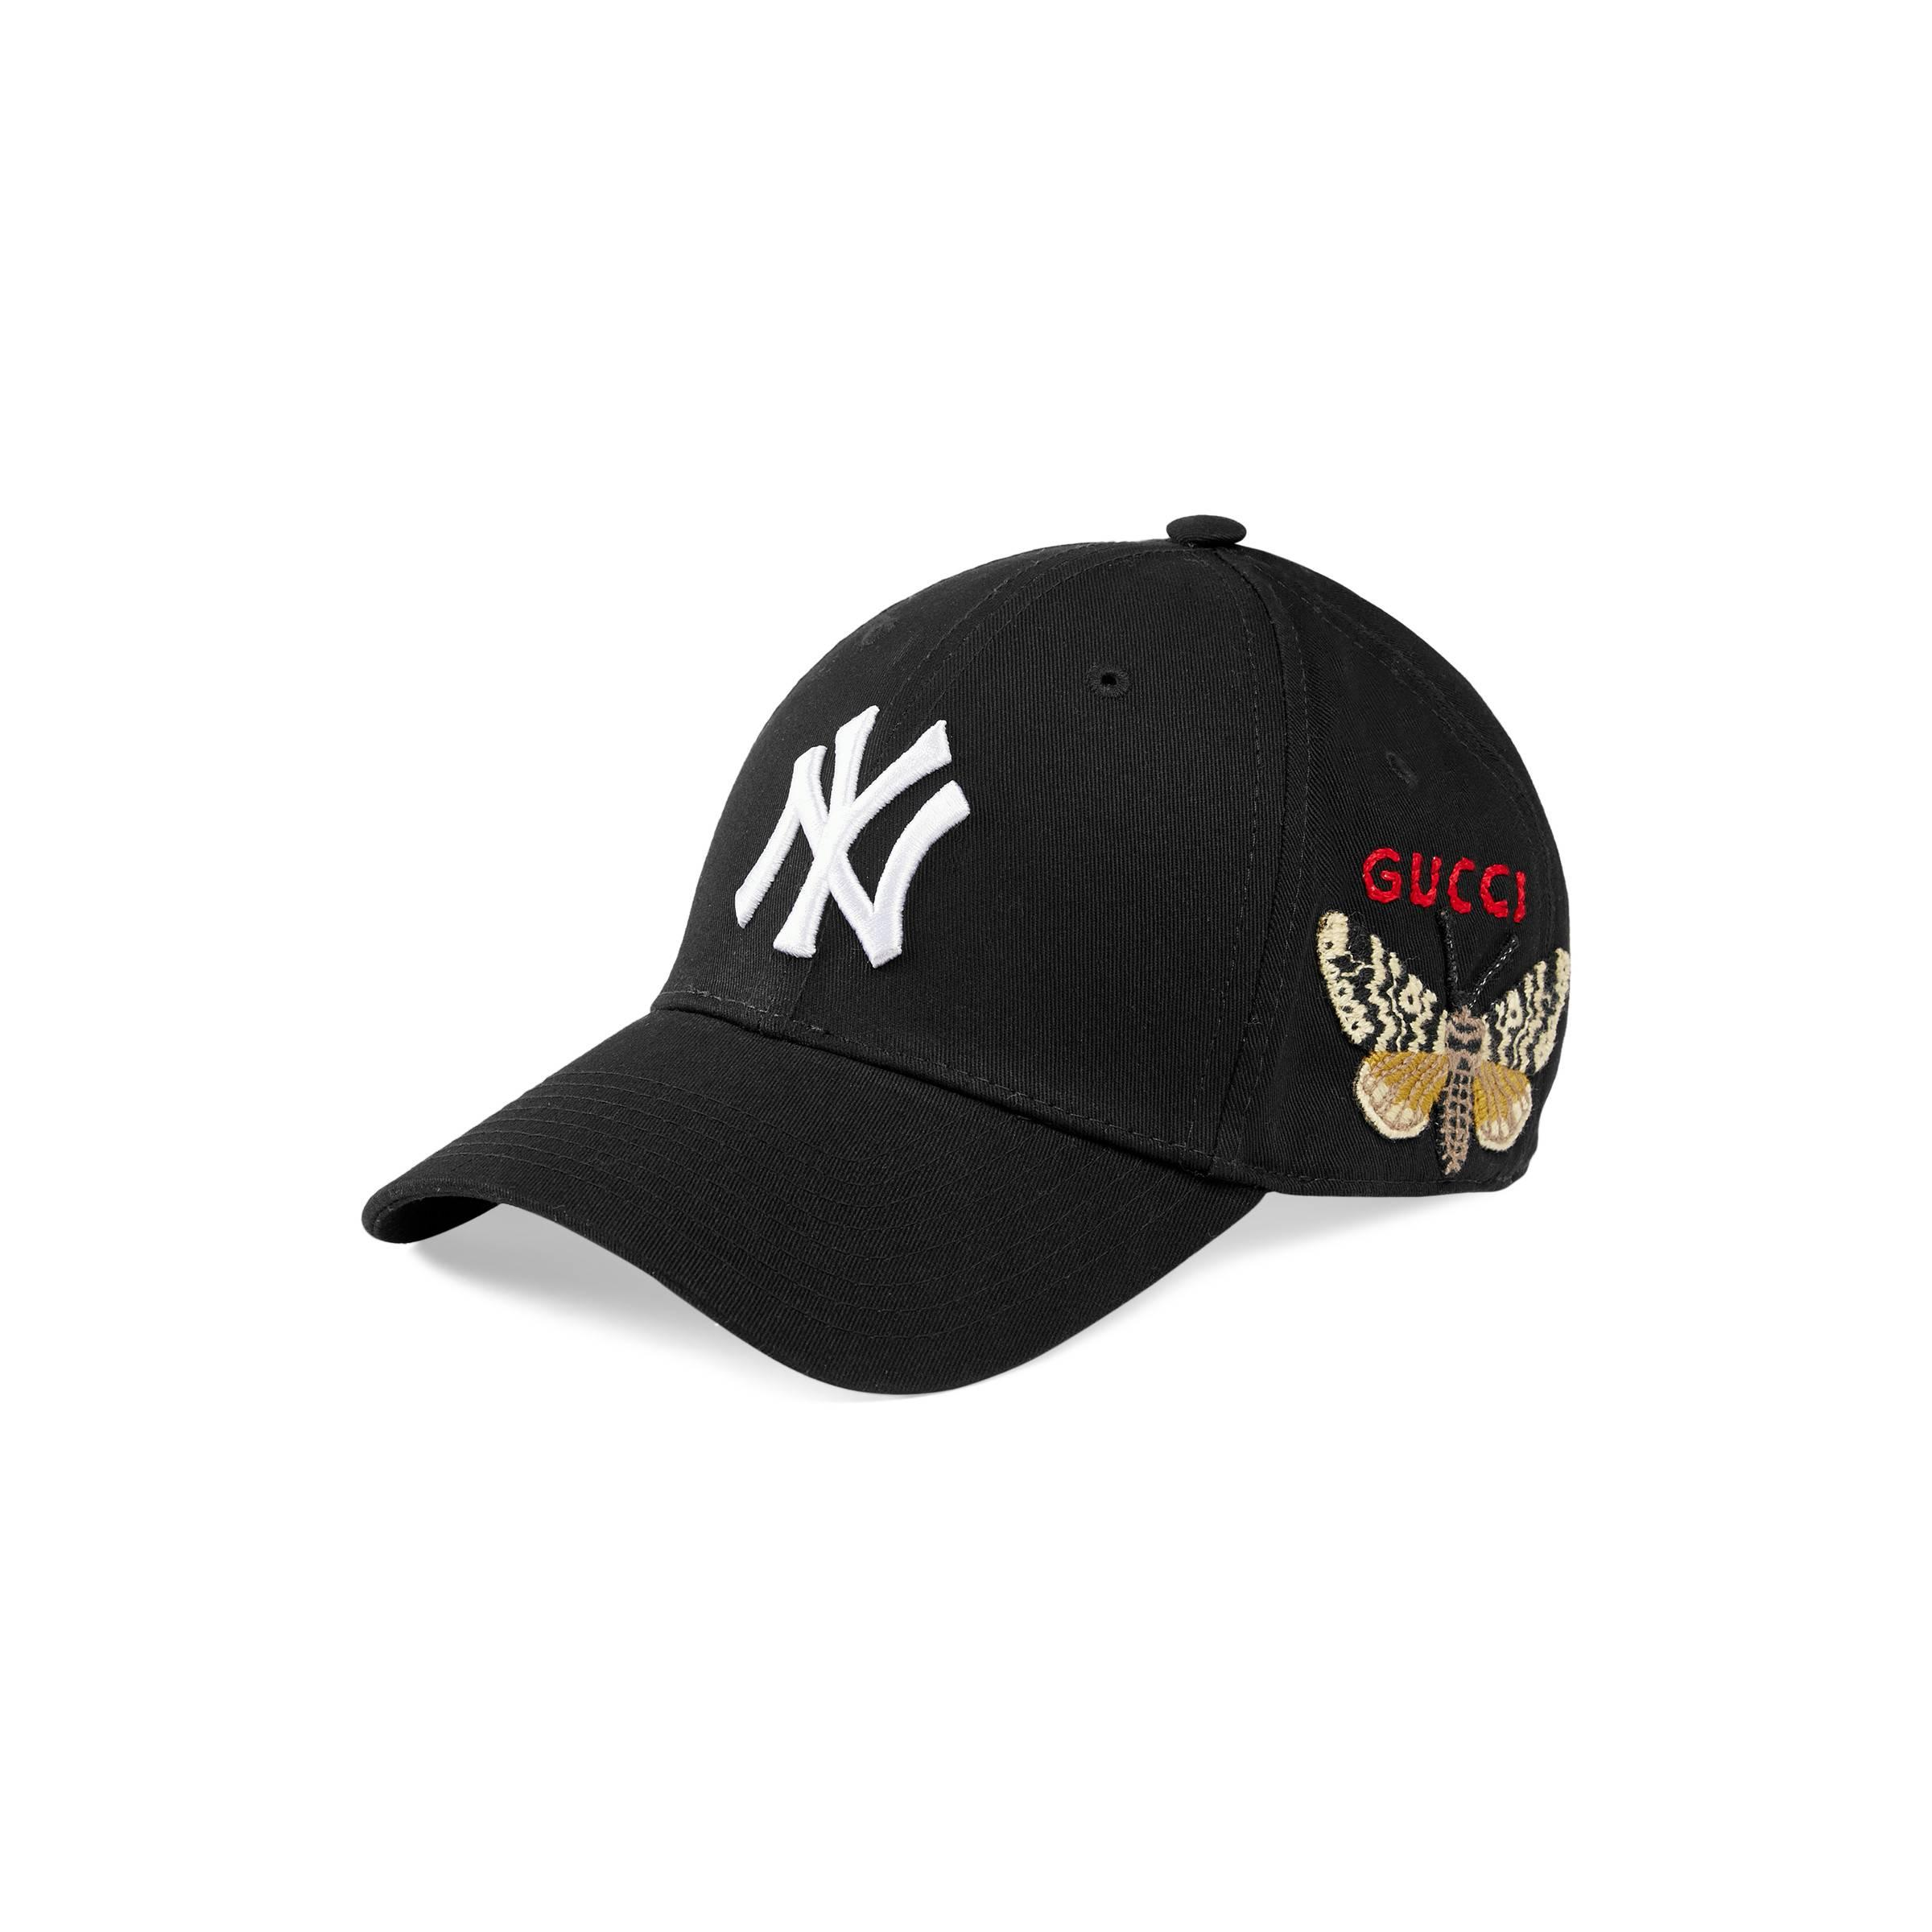 850a6119e7f Gucci - Black Baseball Cap With Ny Yankeestm Patch for Men - Lyst. View  fullscreen